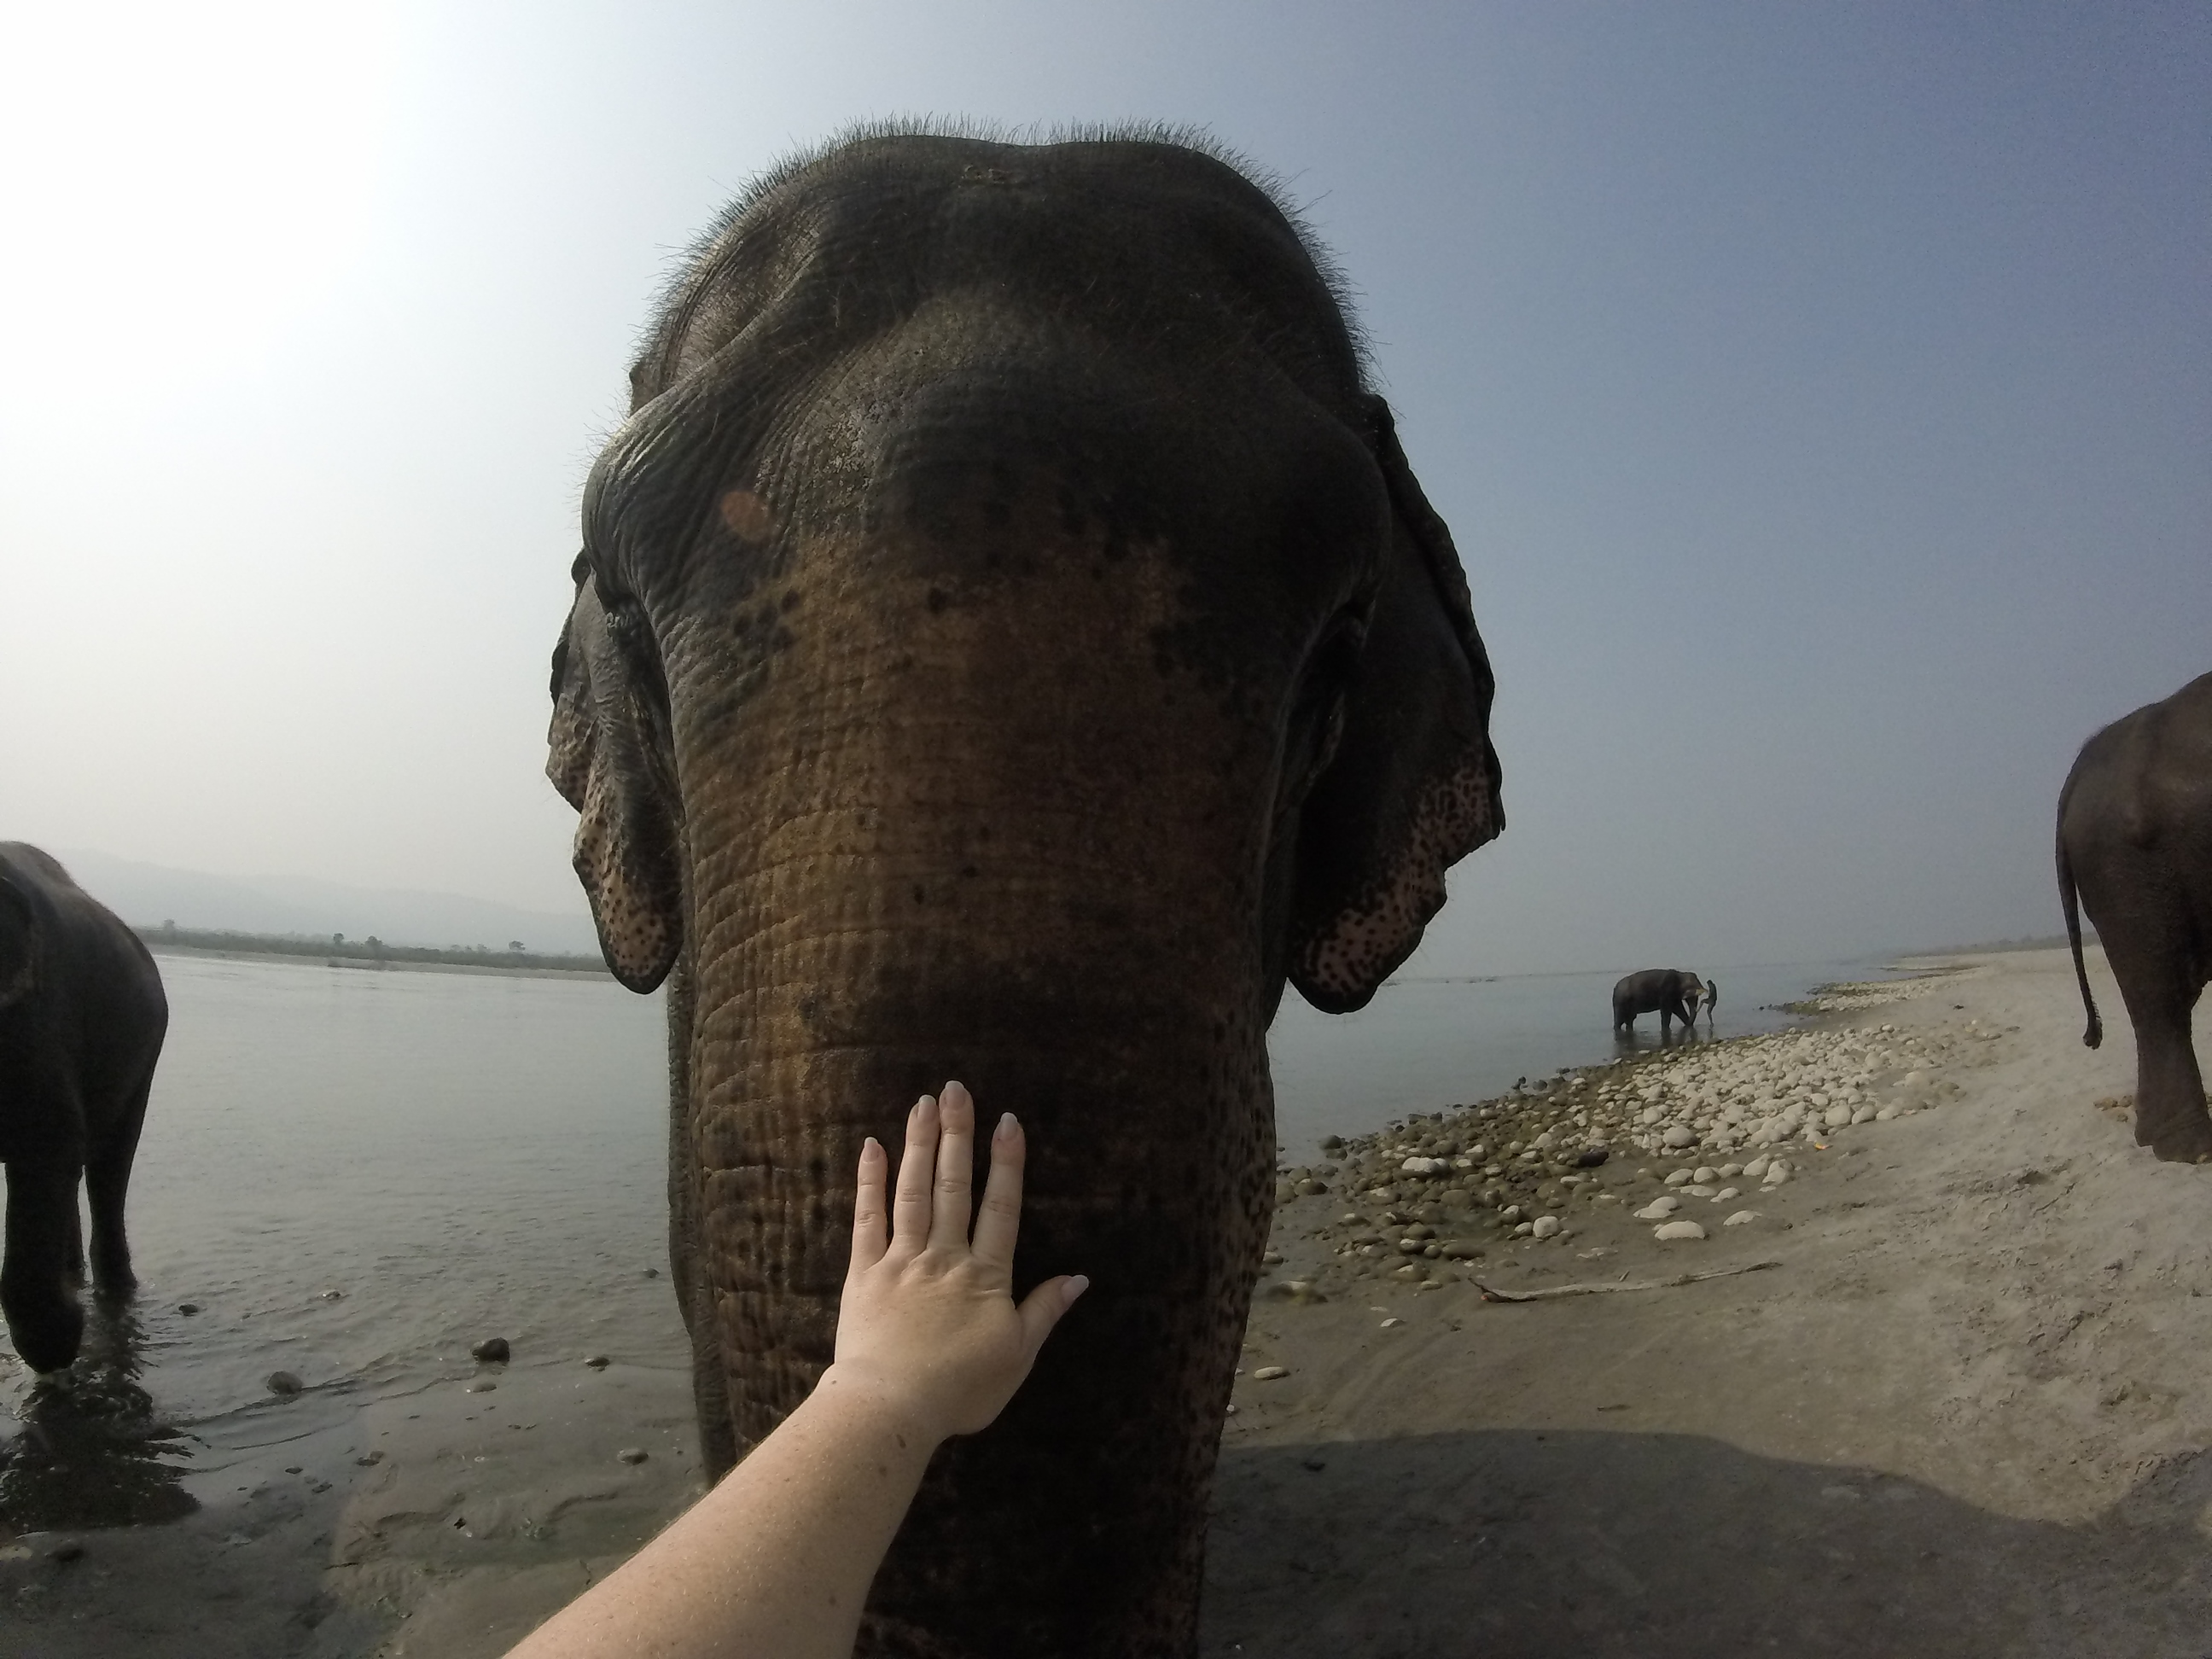 Photo: Visitors can help bathe elephants in Chitwan National Park. Elen Turner